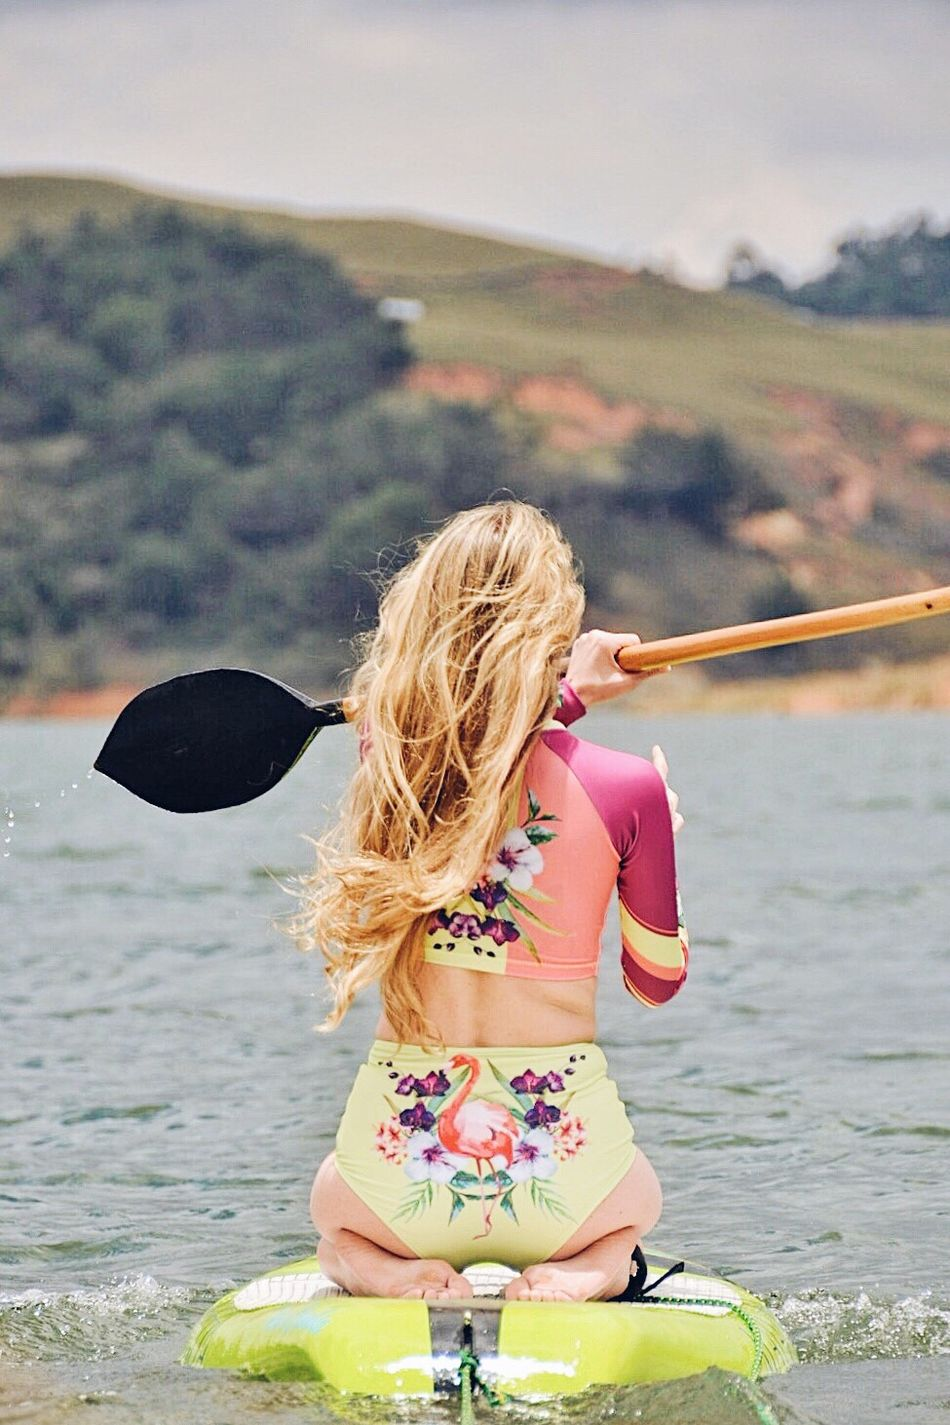 Keep Paddeling Blond Hair Holding Water Girls Outdoors Sea Beach Leisure Activity Water Sports Paddleboarding Paddling Hobbies Strong Women People Outdoor Photography Outdoor Activity Energy Strength Fashion Swimwear Sunny Active Lifestyle  Lifestyles Life Is A Beach Resist